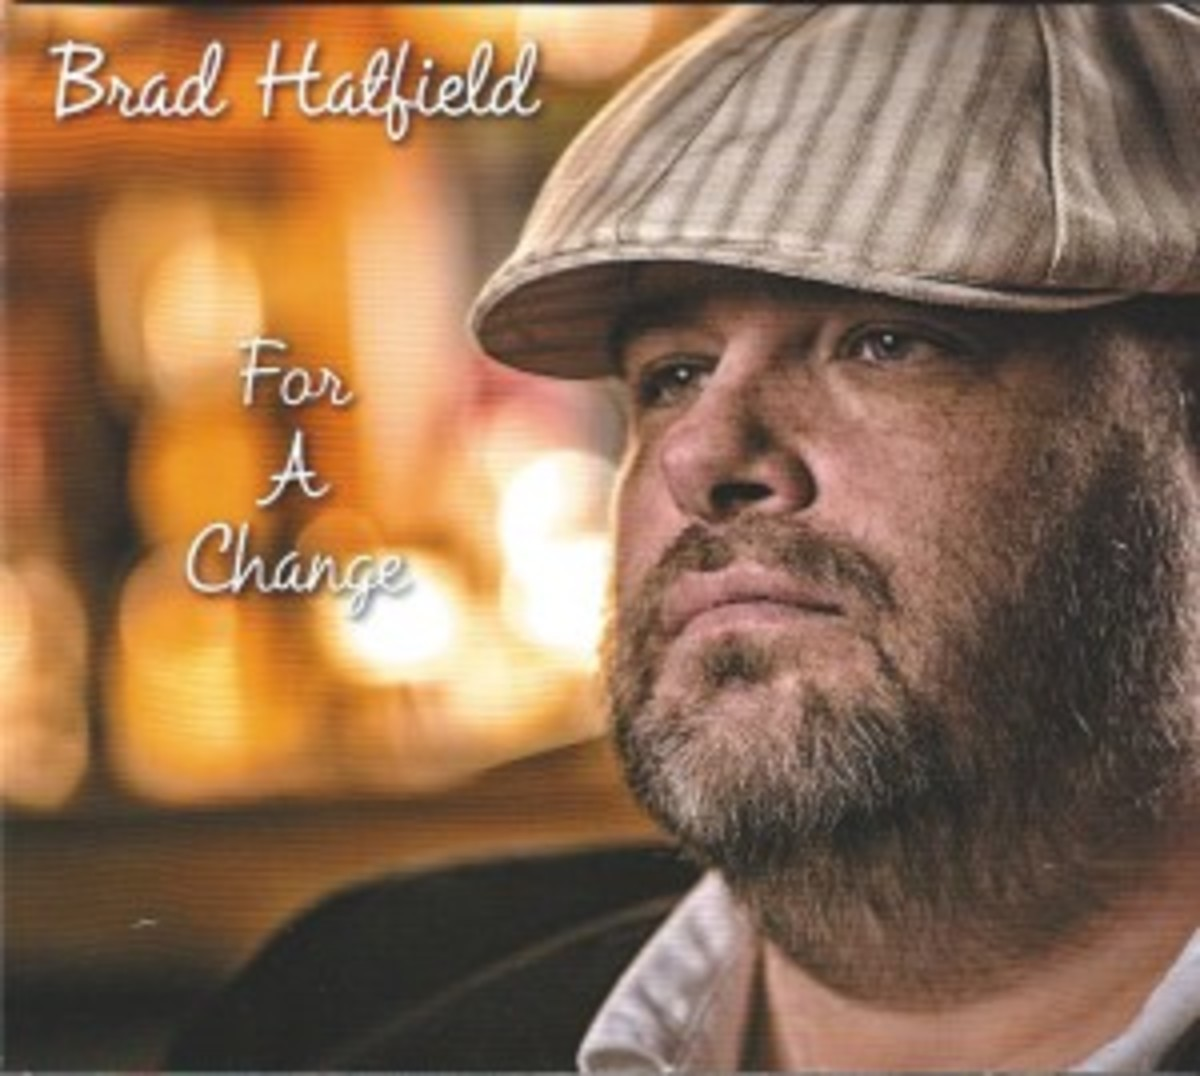 Brad Hatfield - For A Change (Cover)